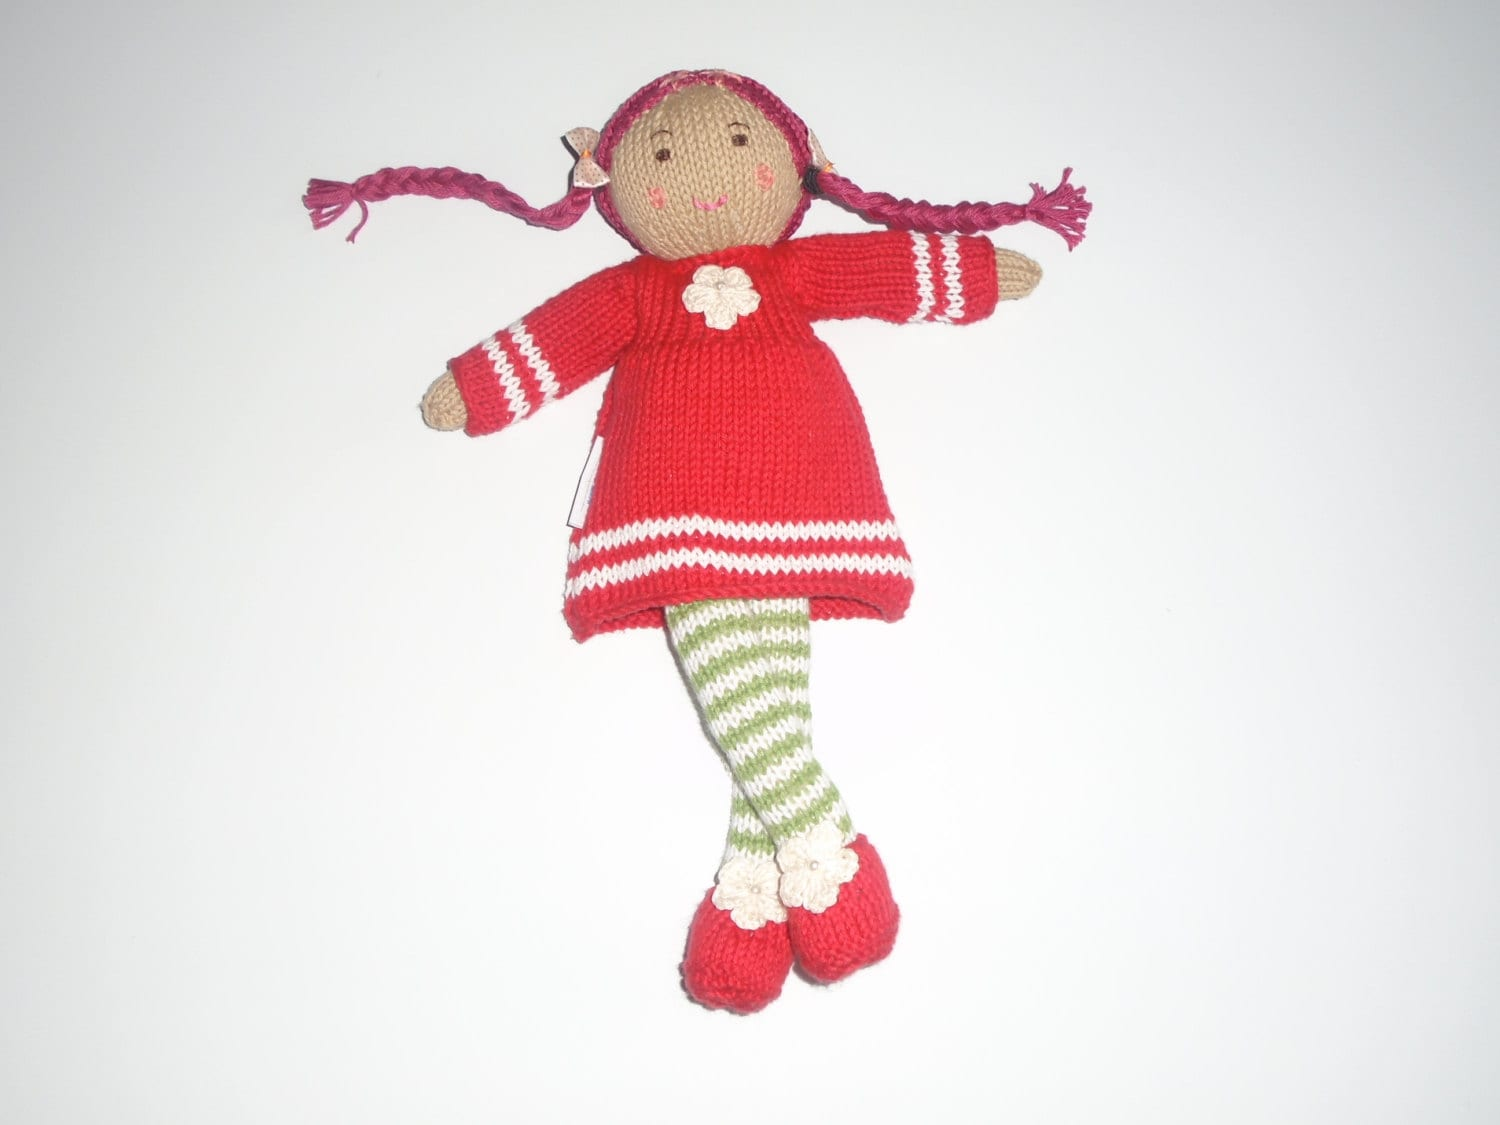 Penelope the Hand Knitted Cotton Dressed Up Doll Soft Toy  READY TO SHIP!